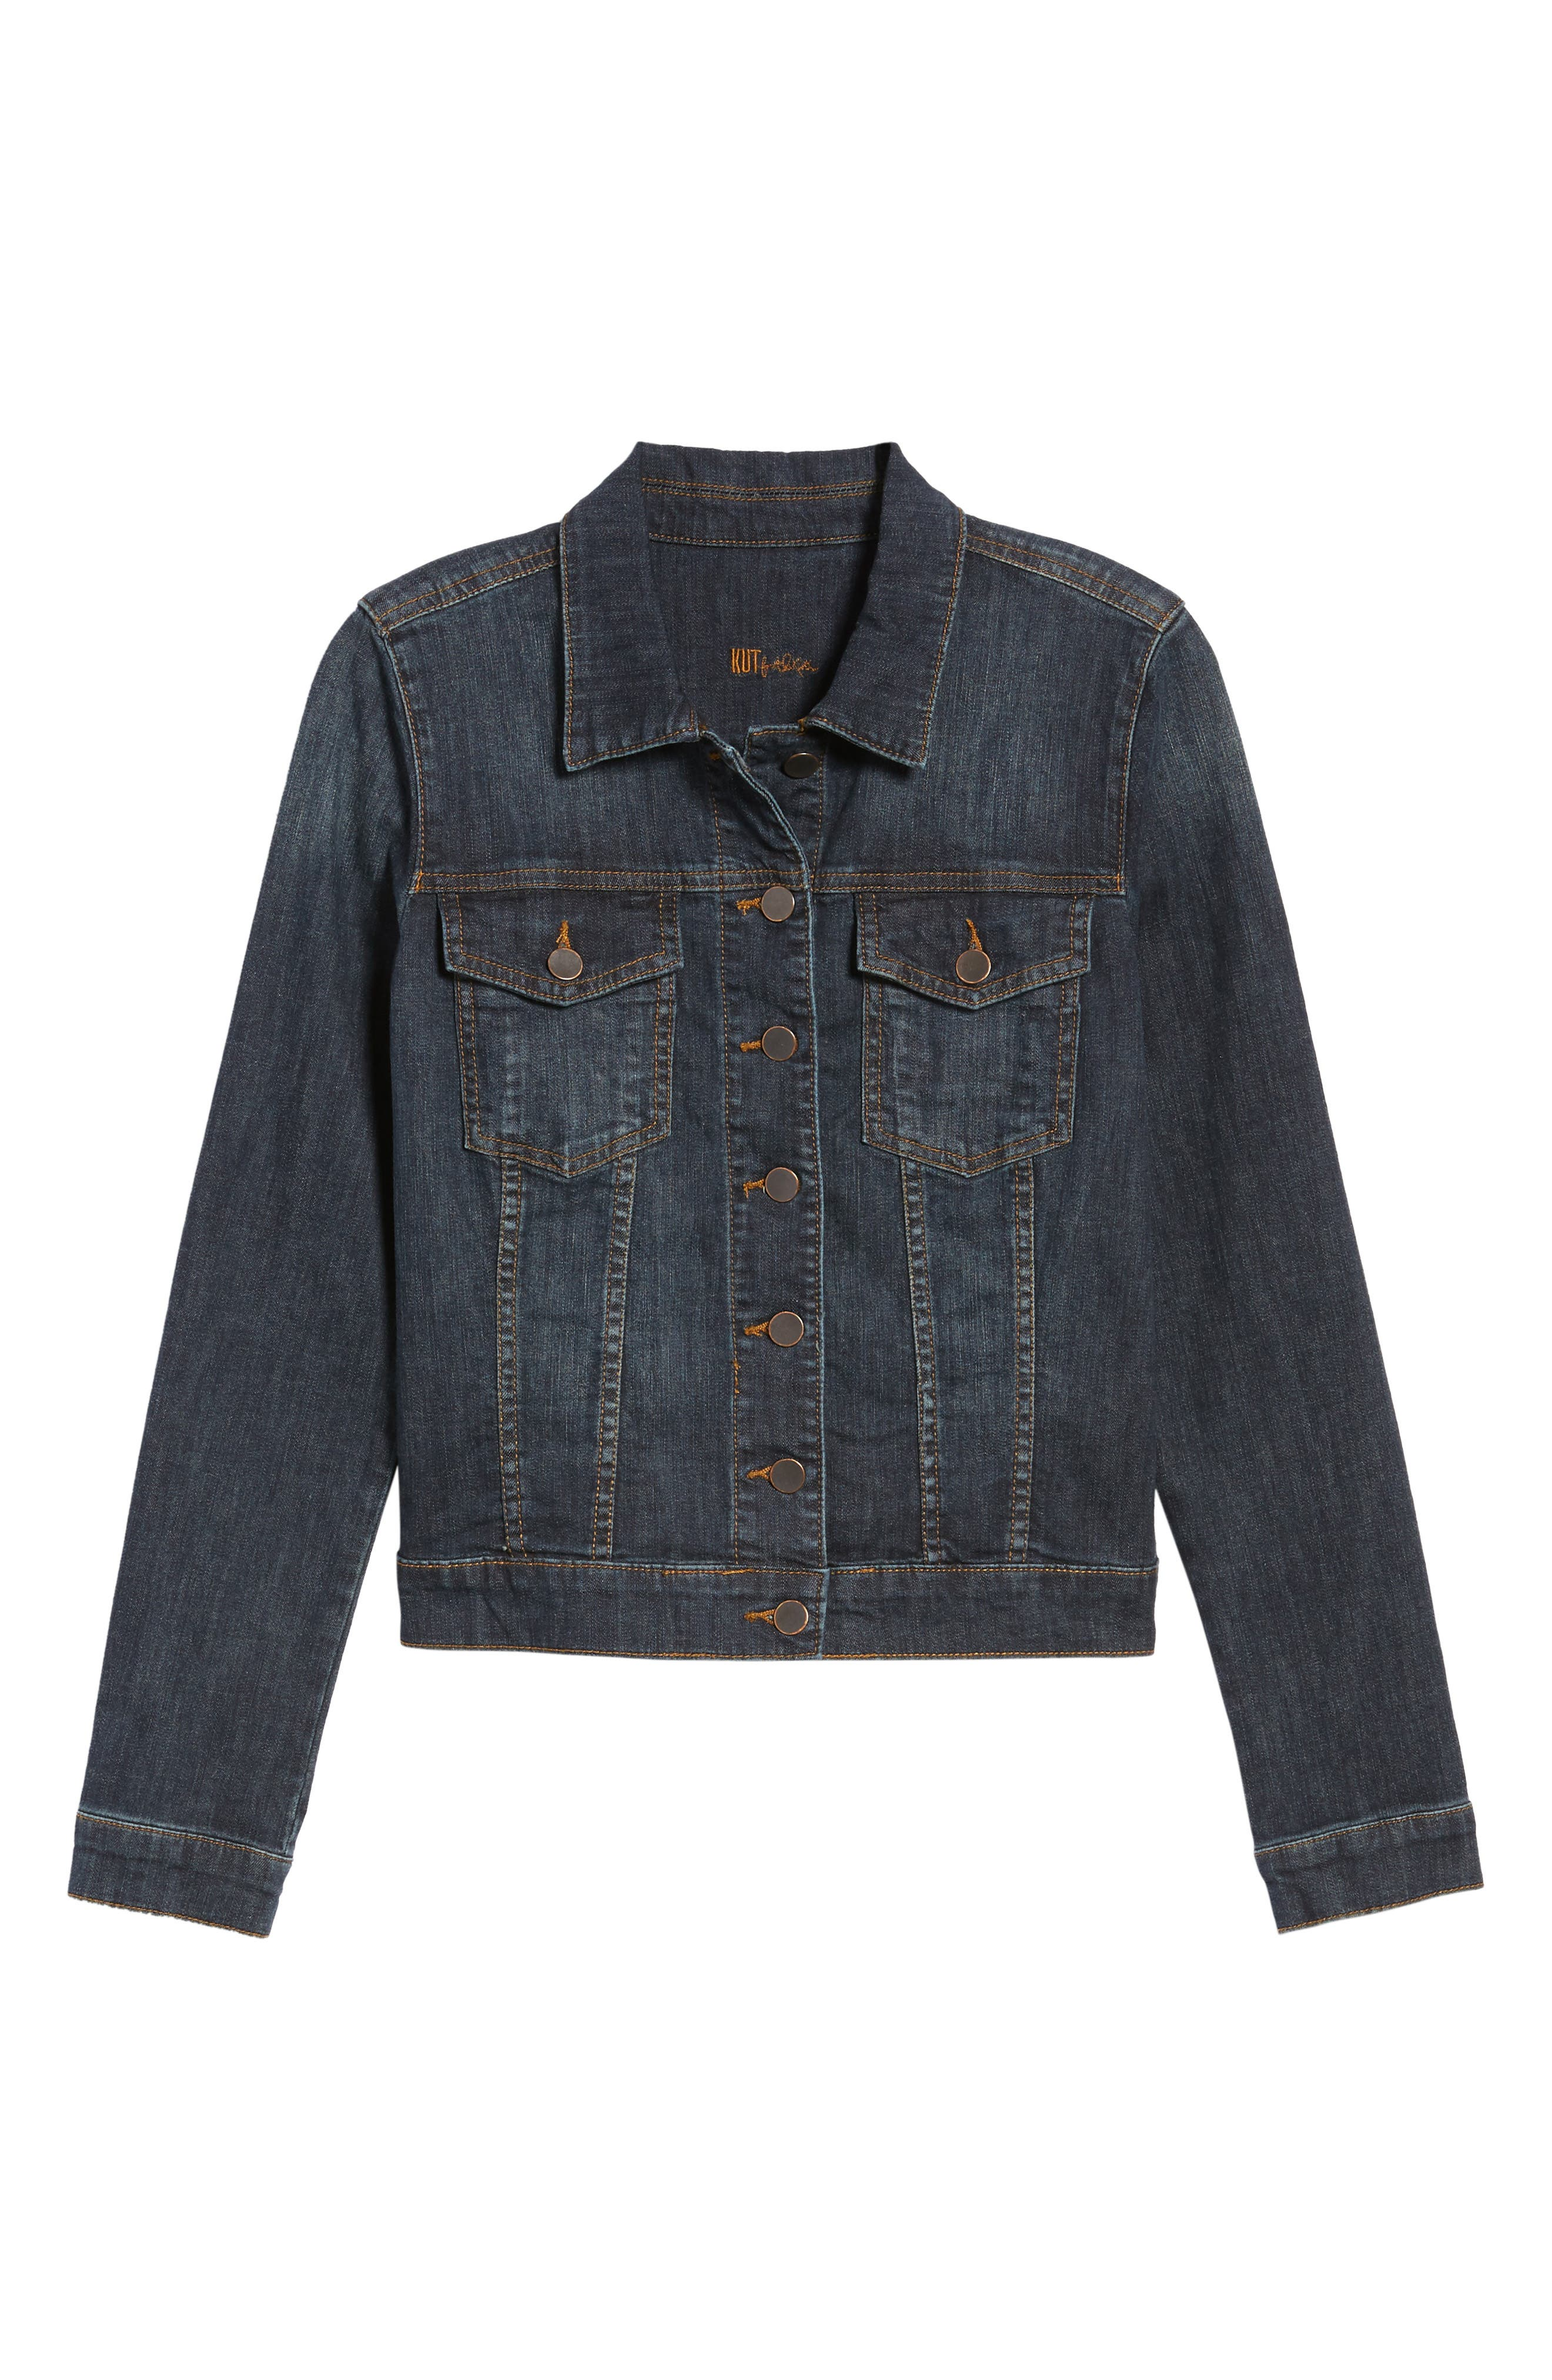 KUT FROM THE KLOTH, 'Helena' Denim Jacket, Alternate thumbnail 6, color, GRATITUDE